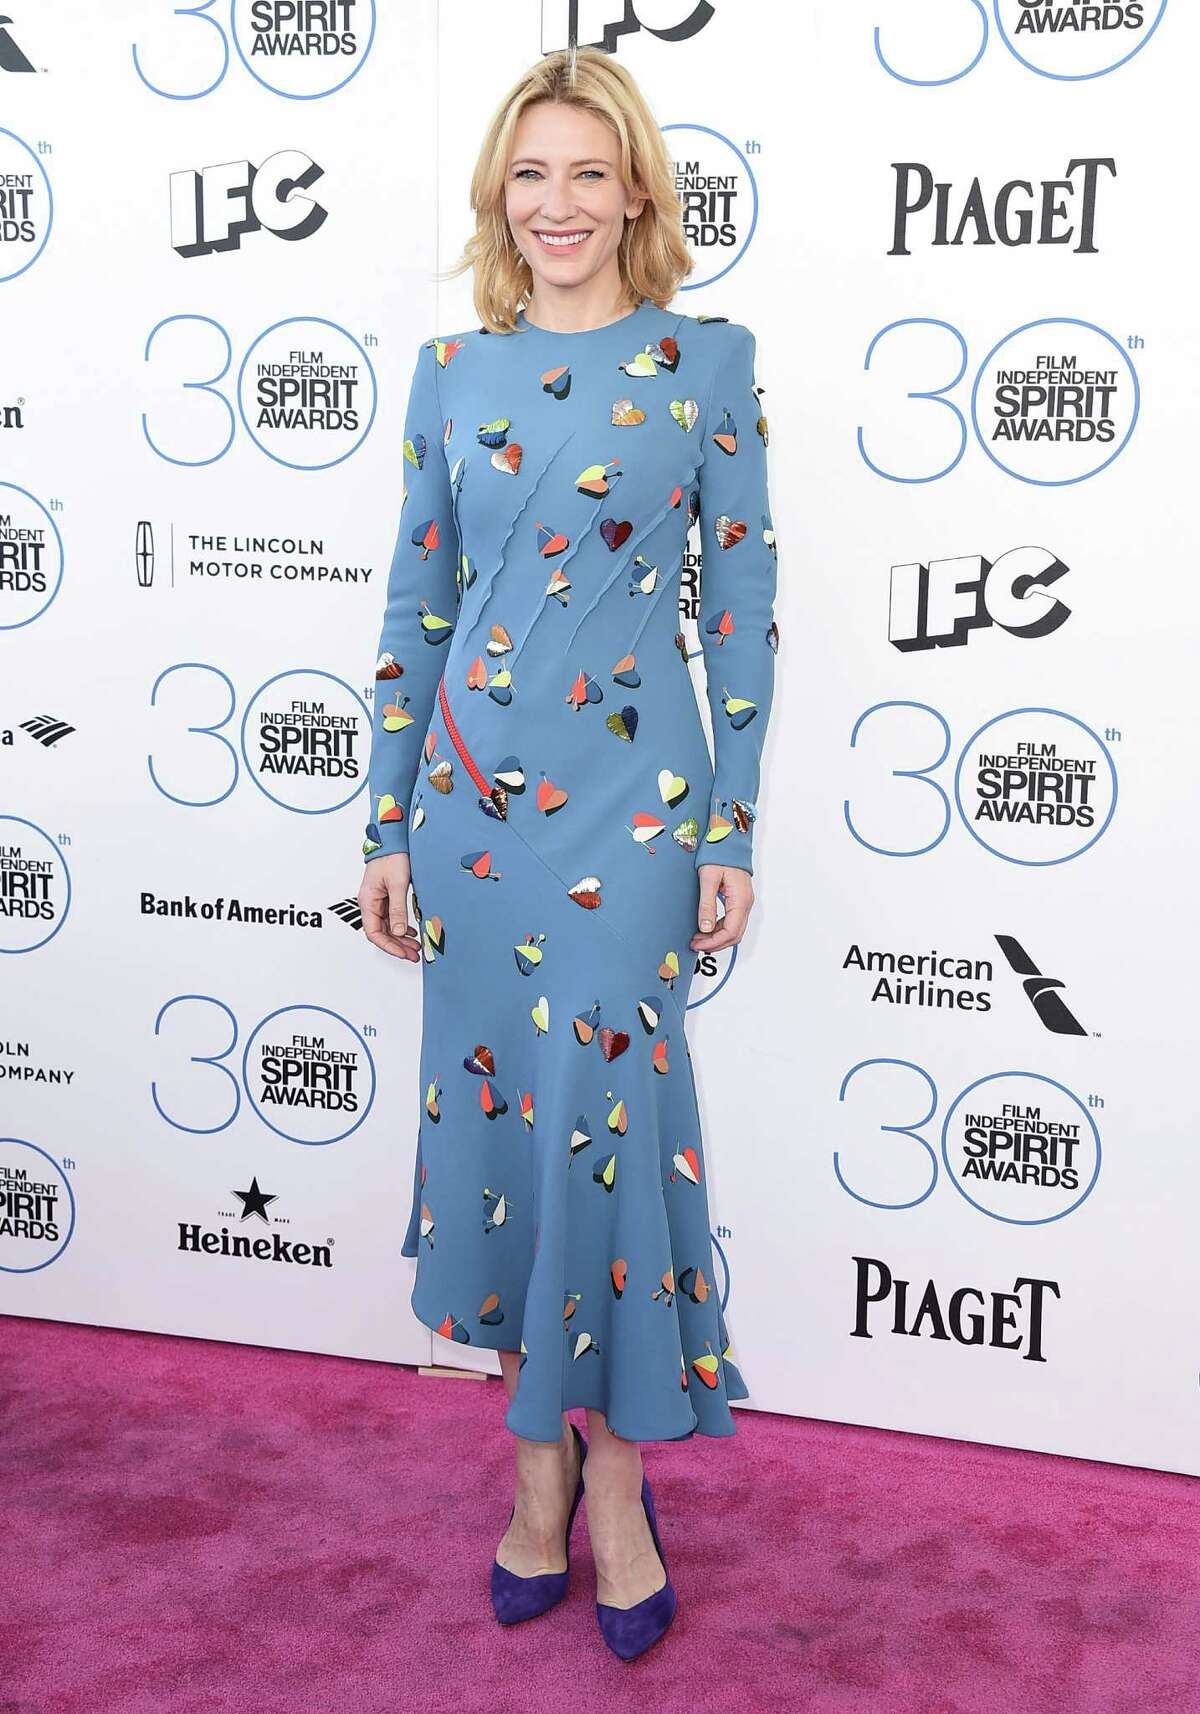 Cate Blanchett arrives at the 30th Film Independent Spirit Awards on Saturday, Feb. 21, 2015, in Santa Monica, Calif.